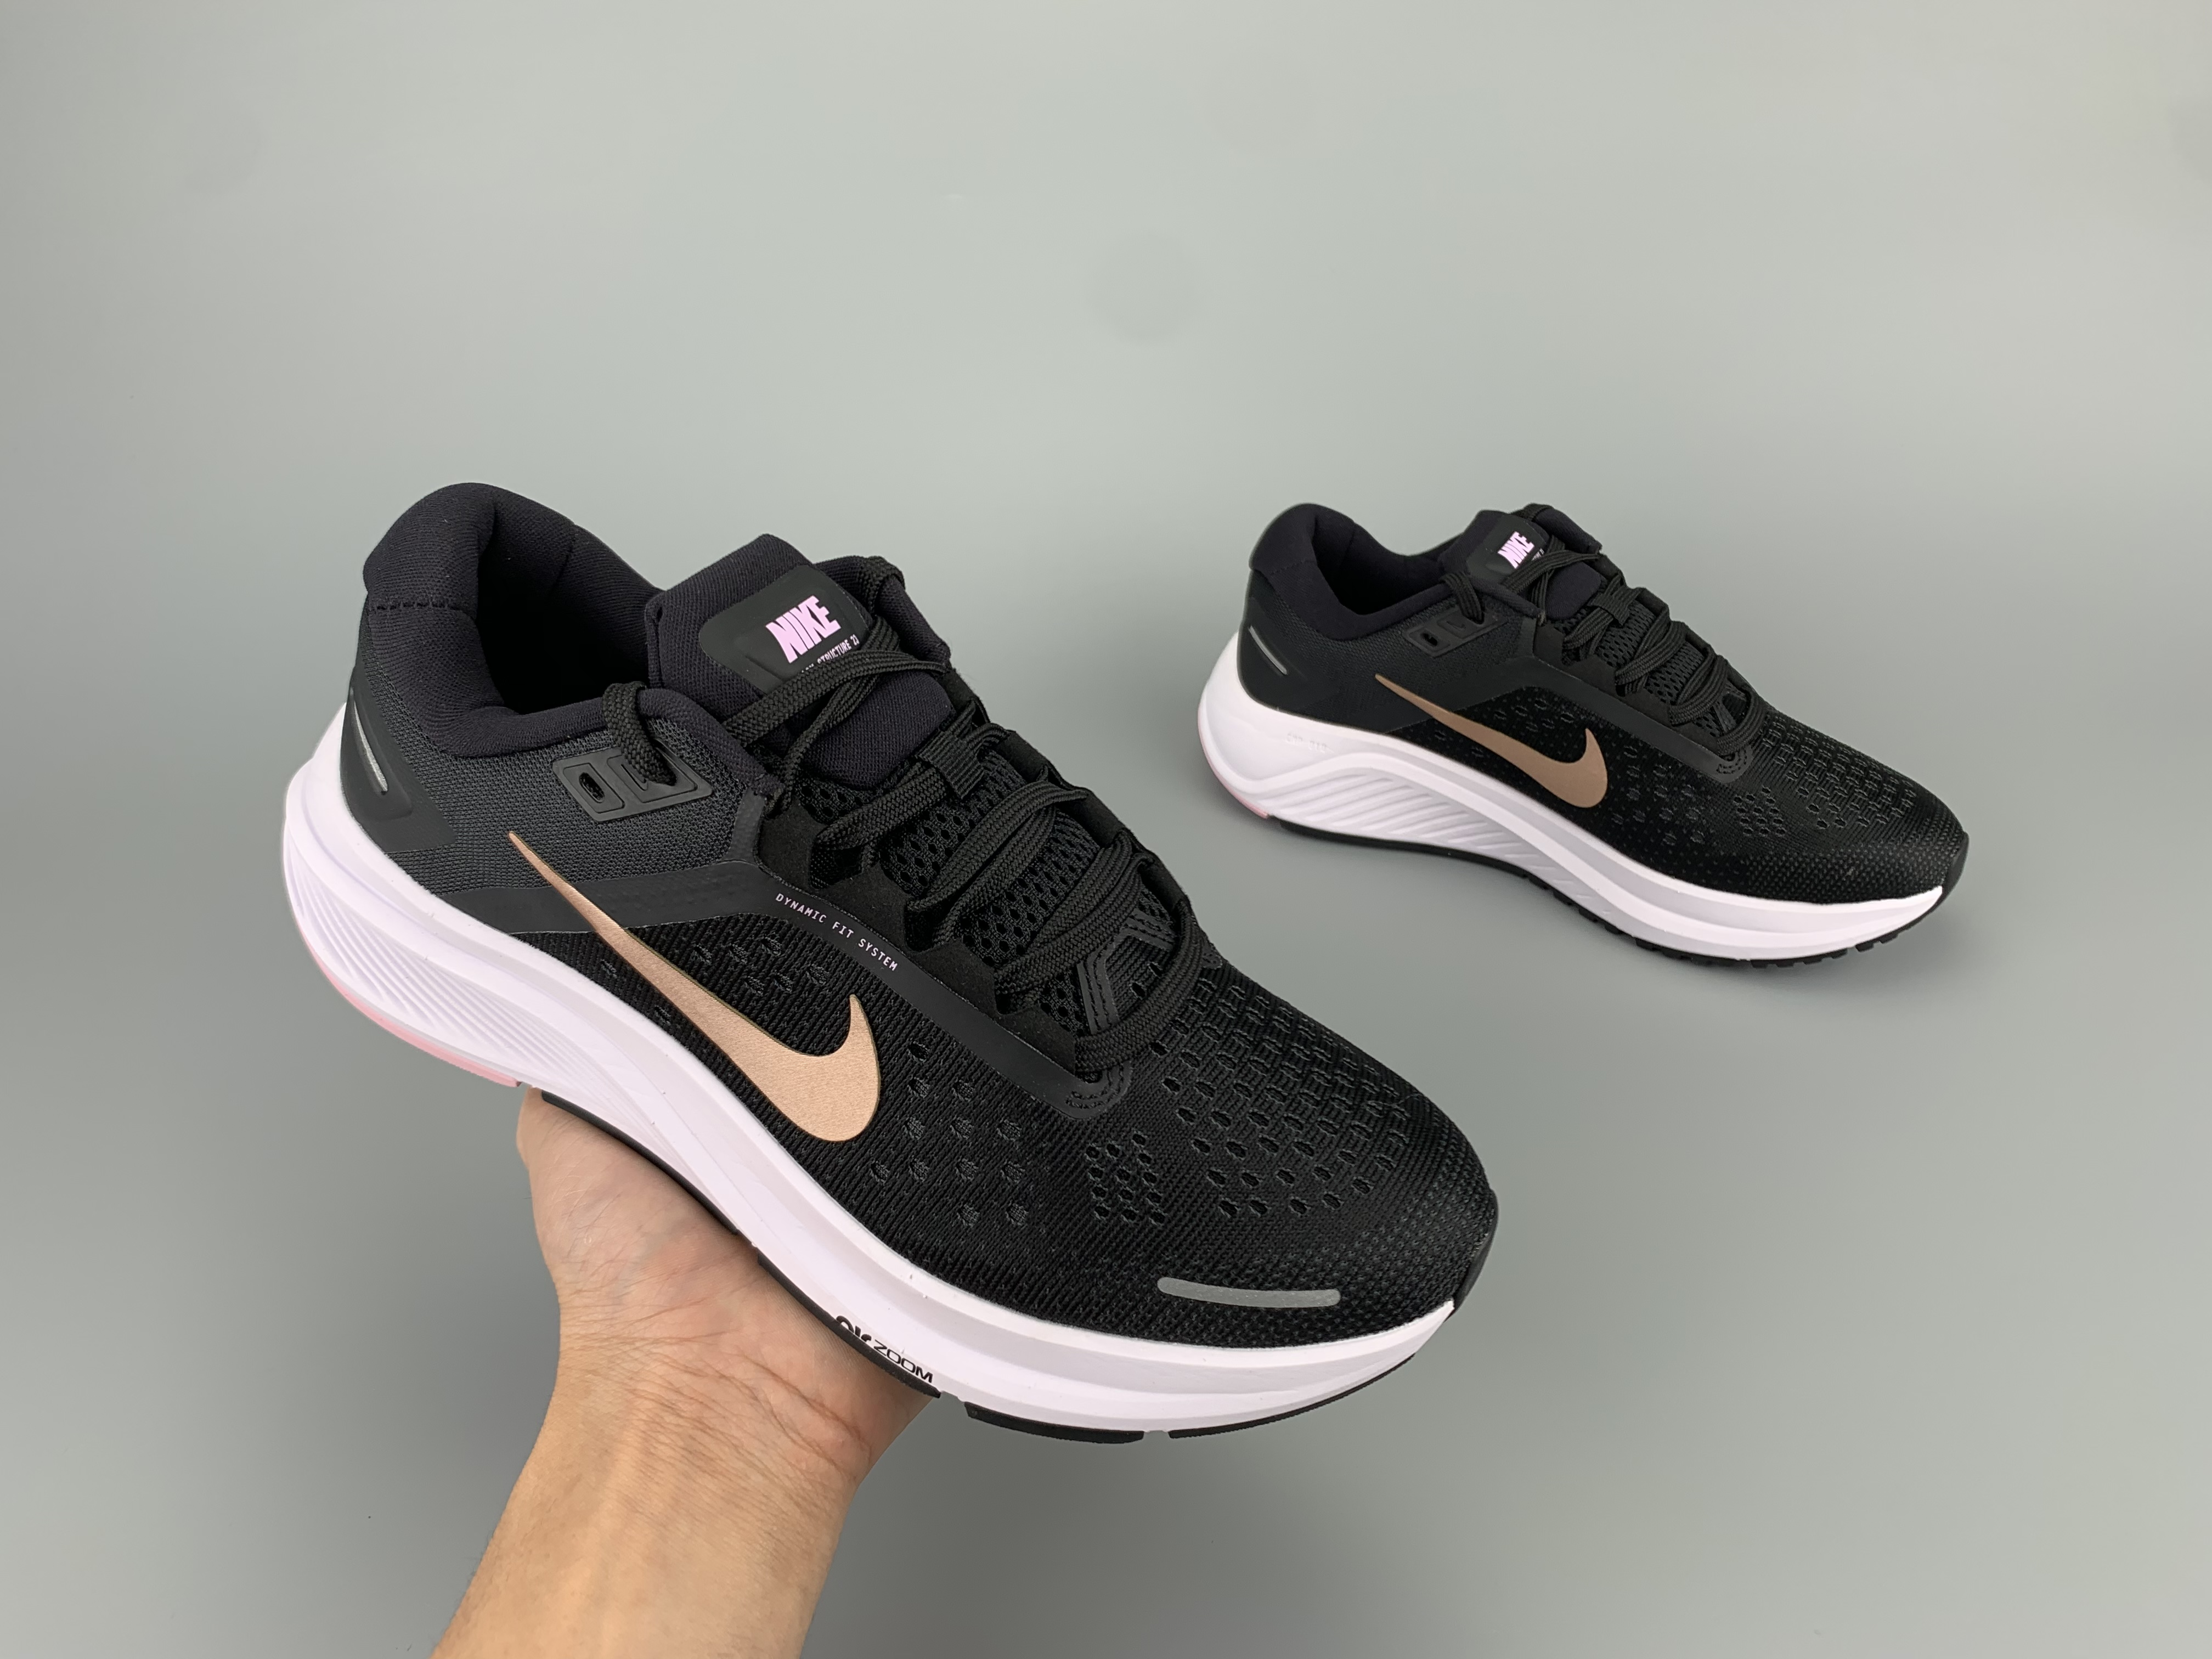 2020 Men Nike Zoom Structure 23 Black Gold White Running Shoes